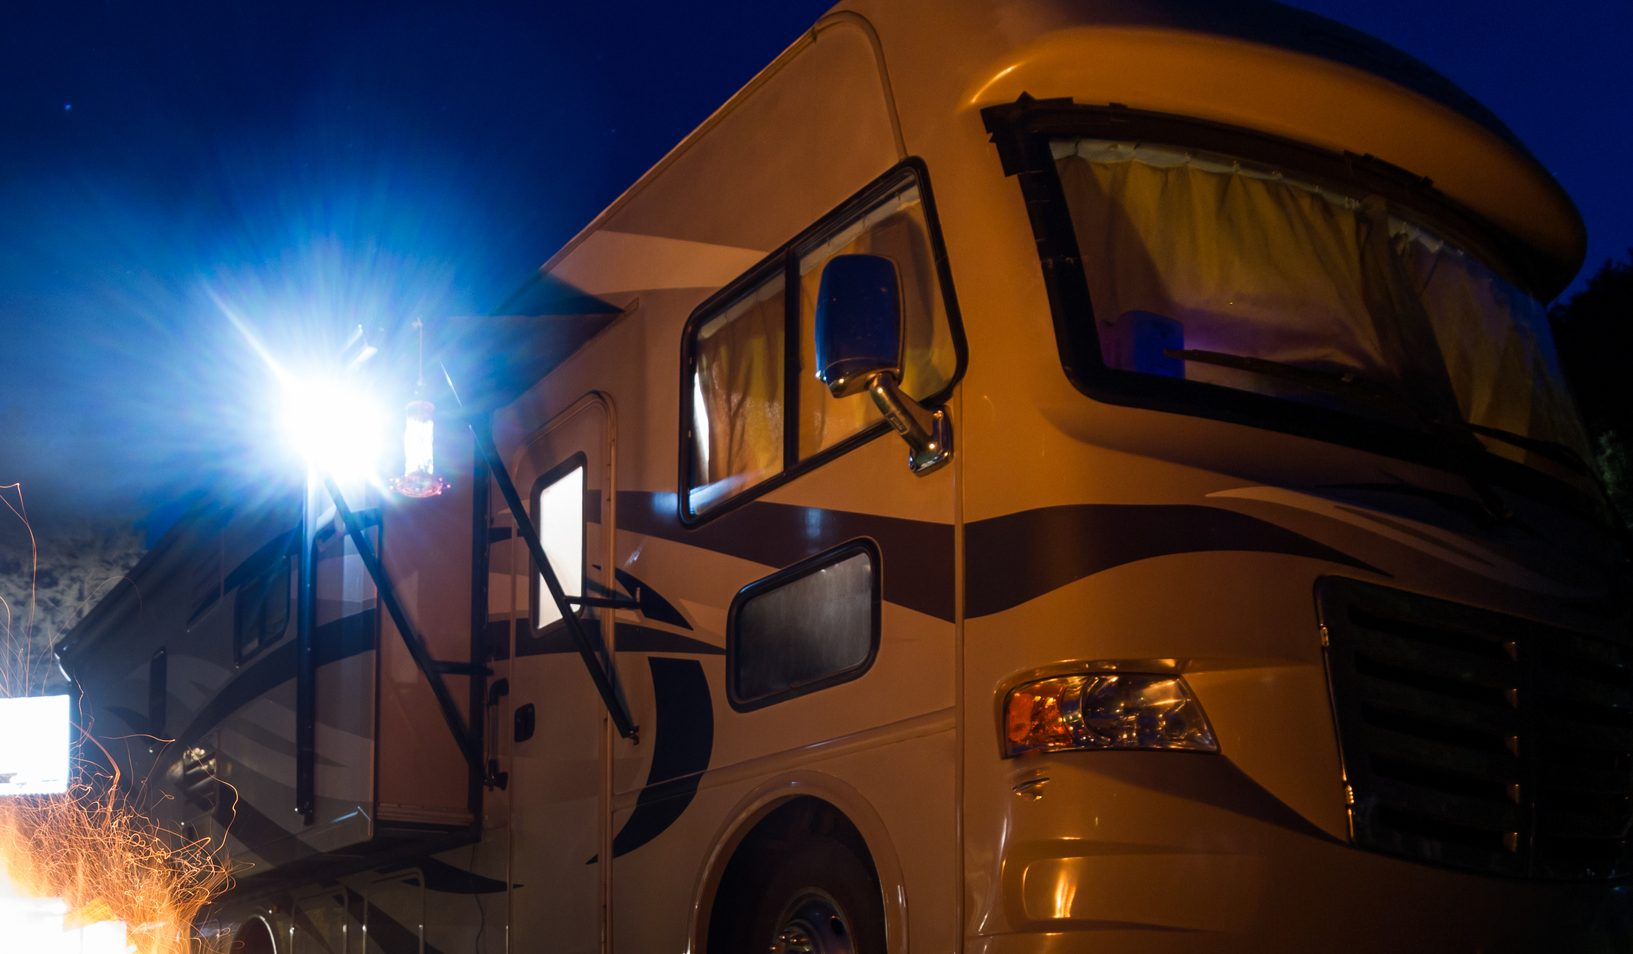 A motorhome during the evening with fire and light.